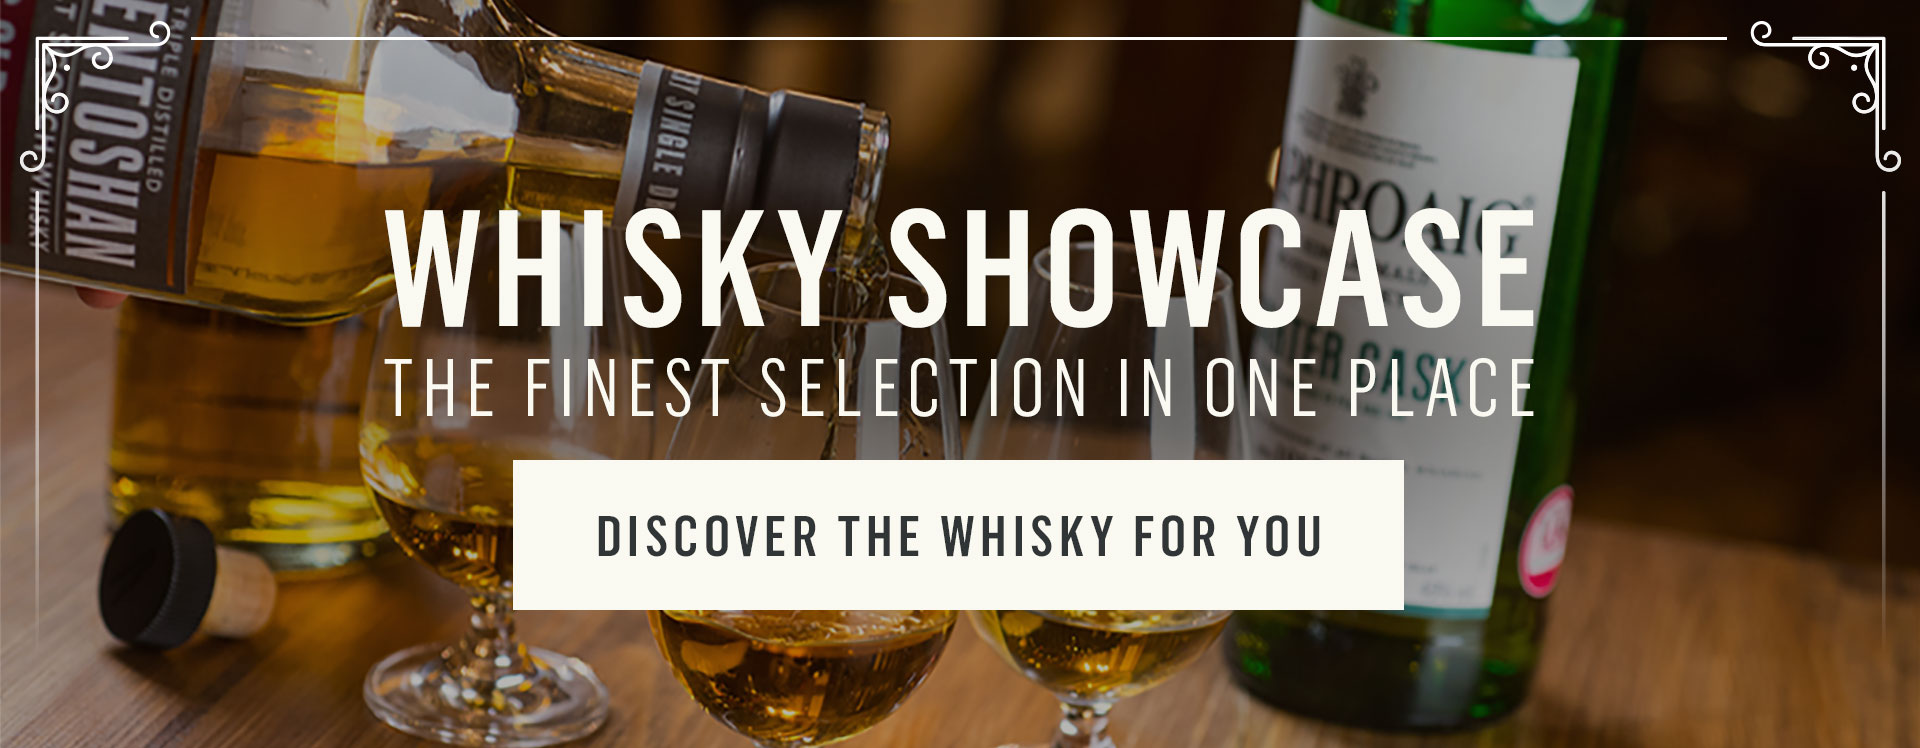 Whisky Showcase at The Wellington in London